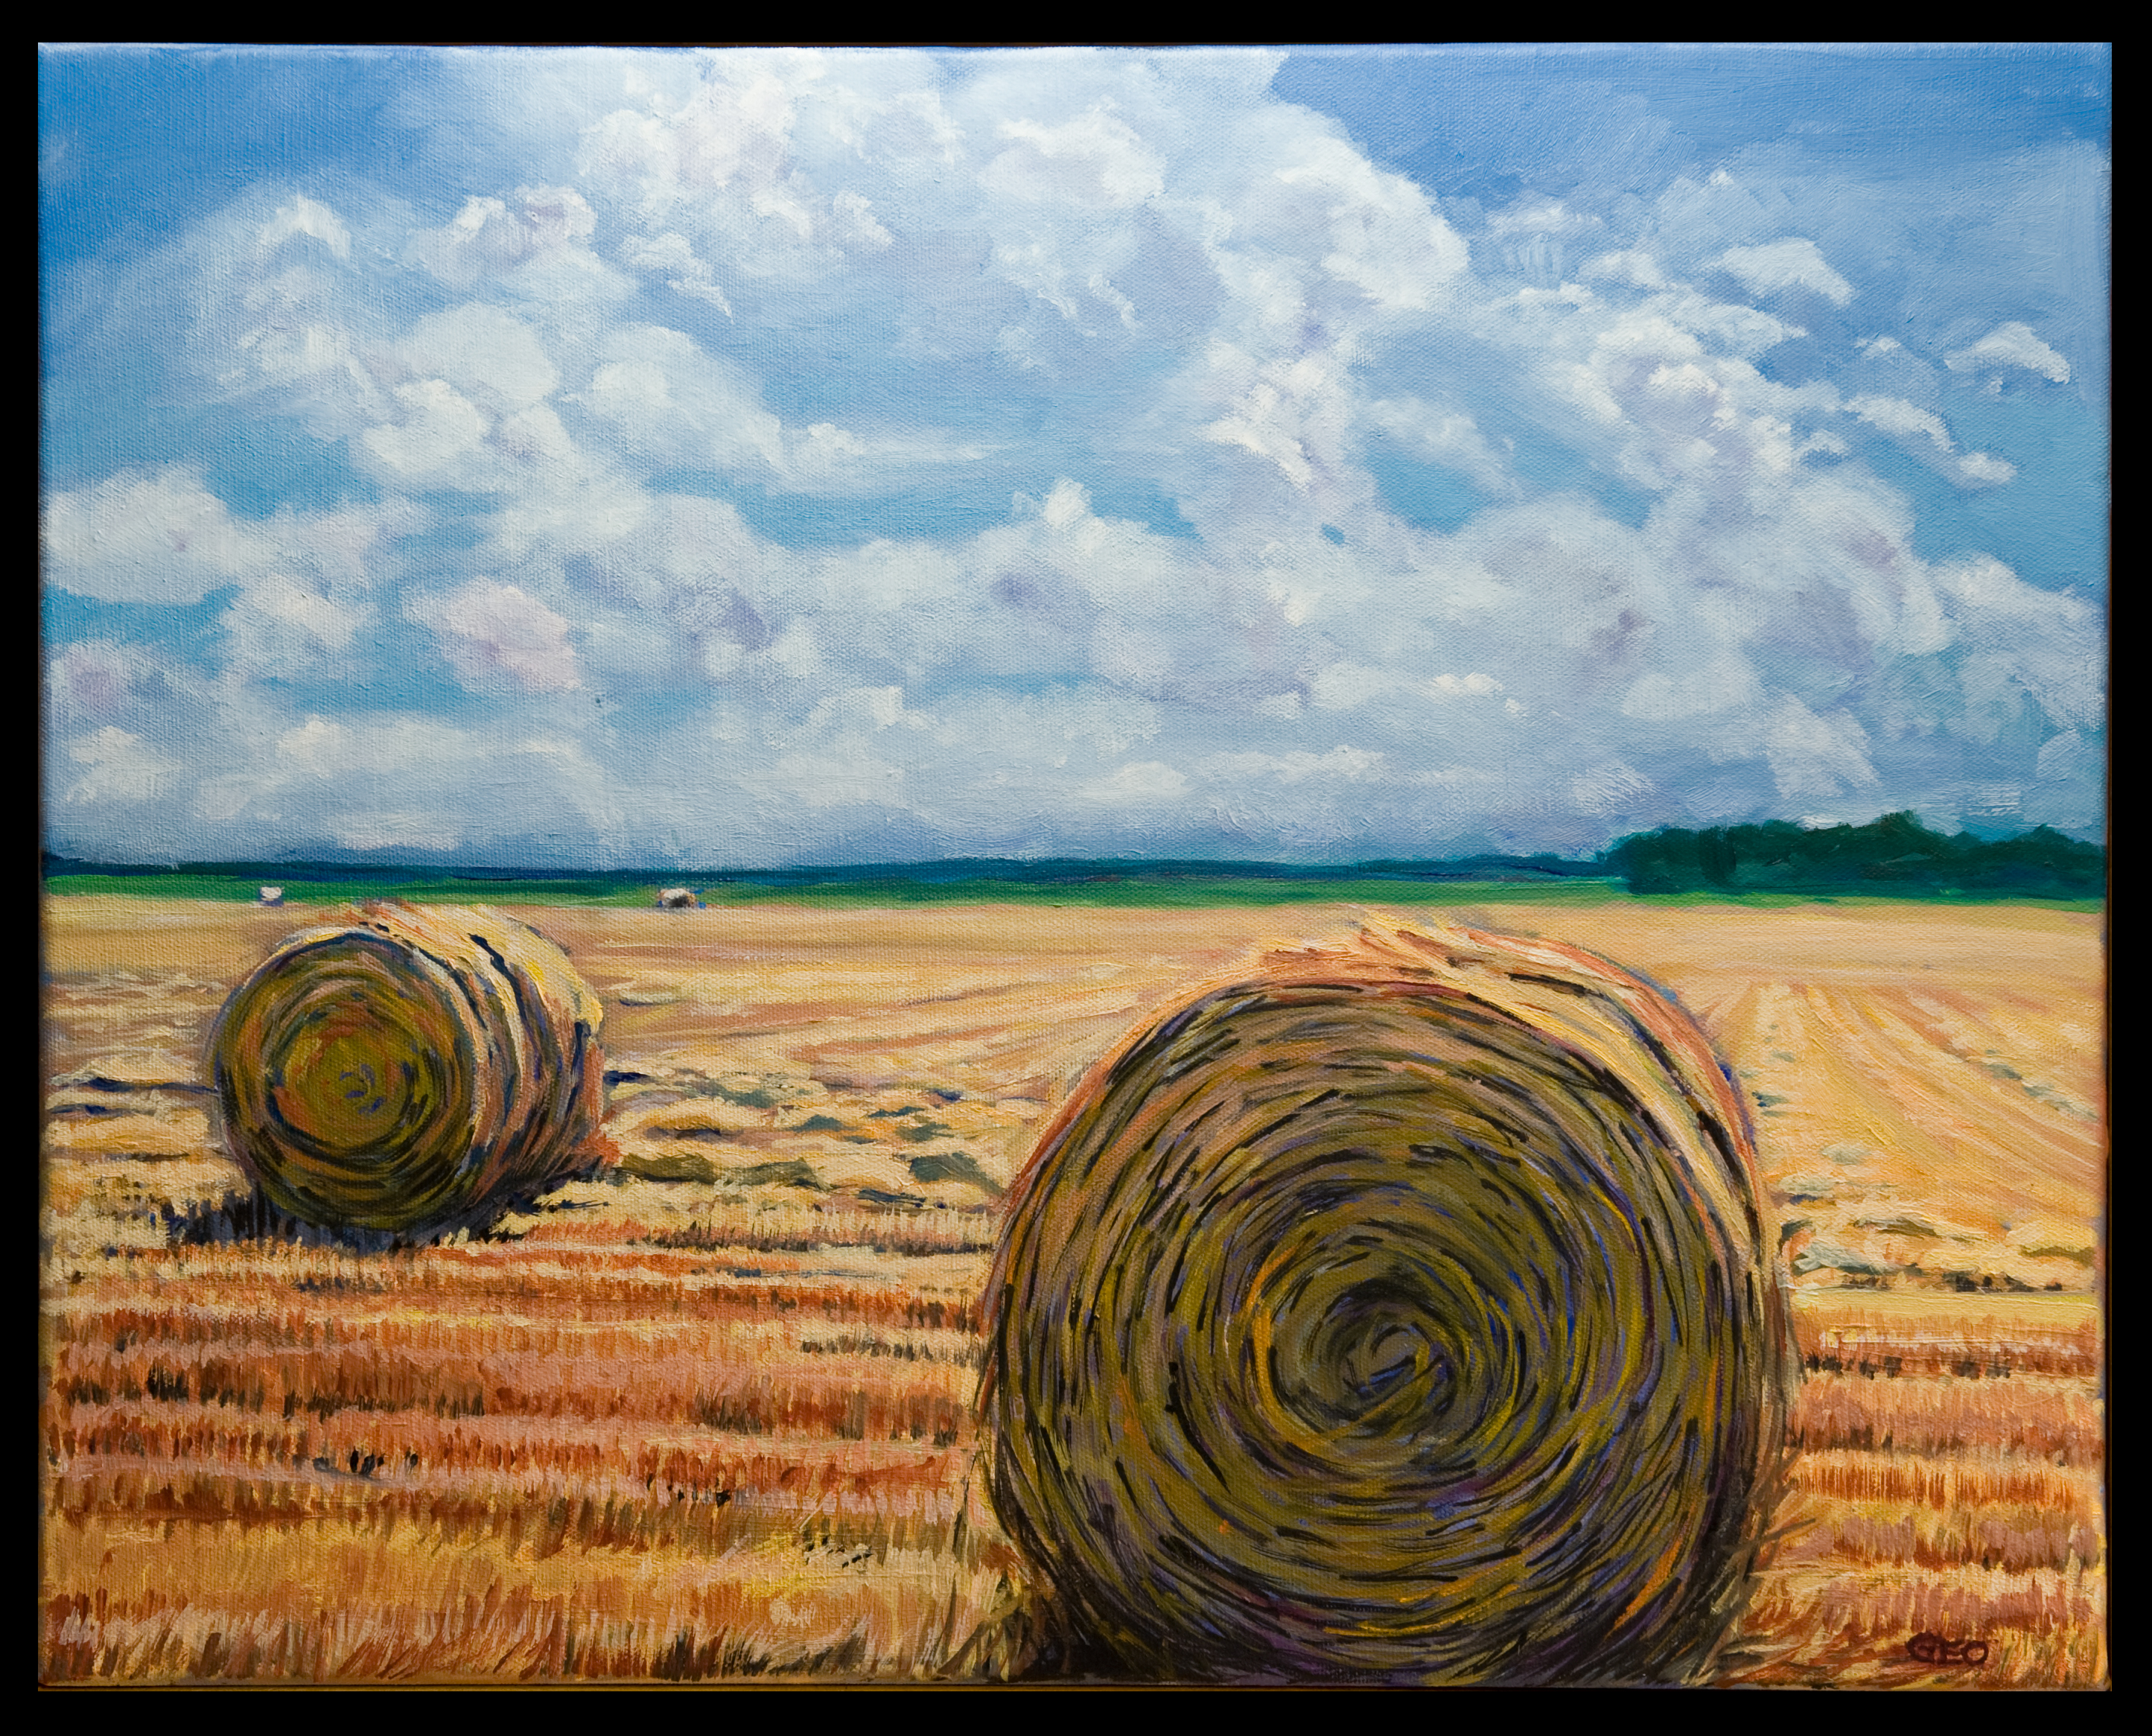 Round Bales 16x20 oil on canvas